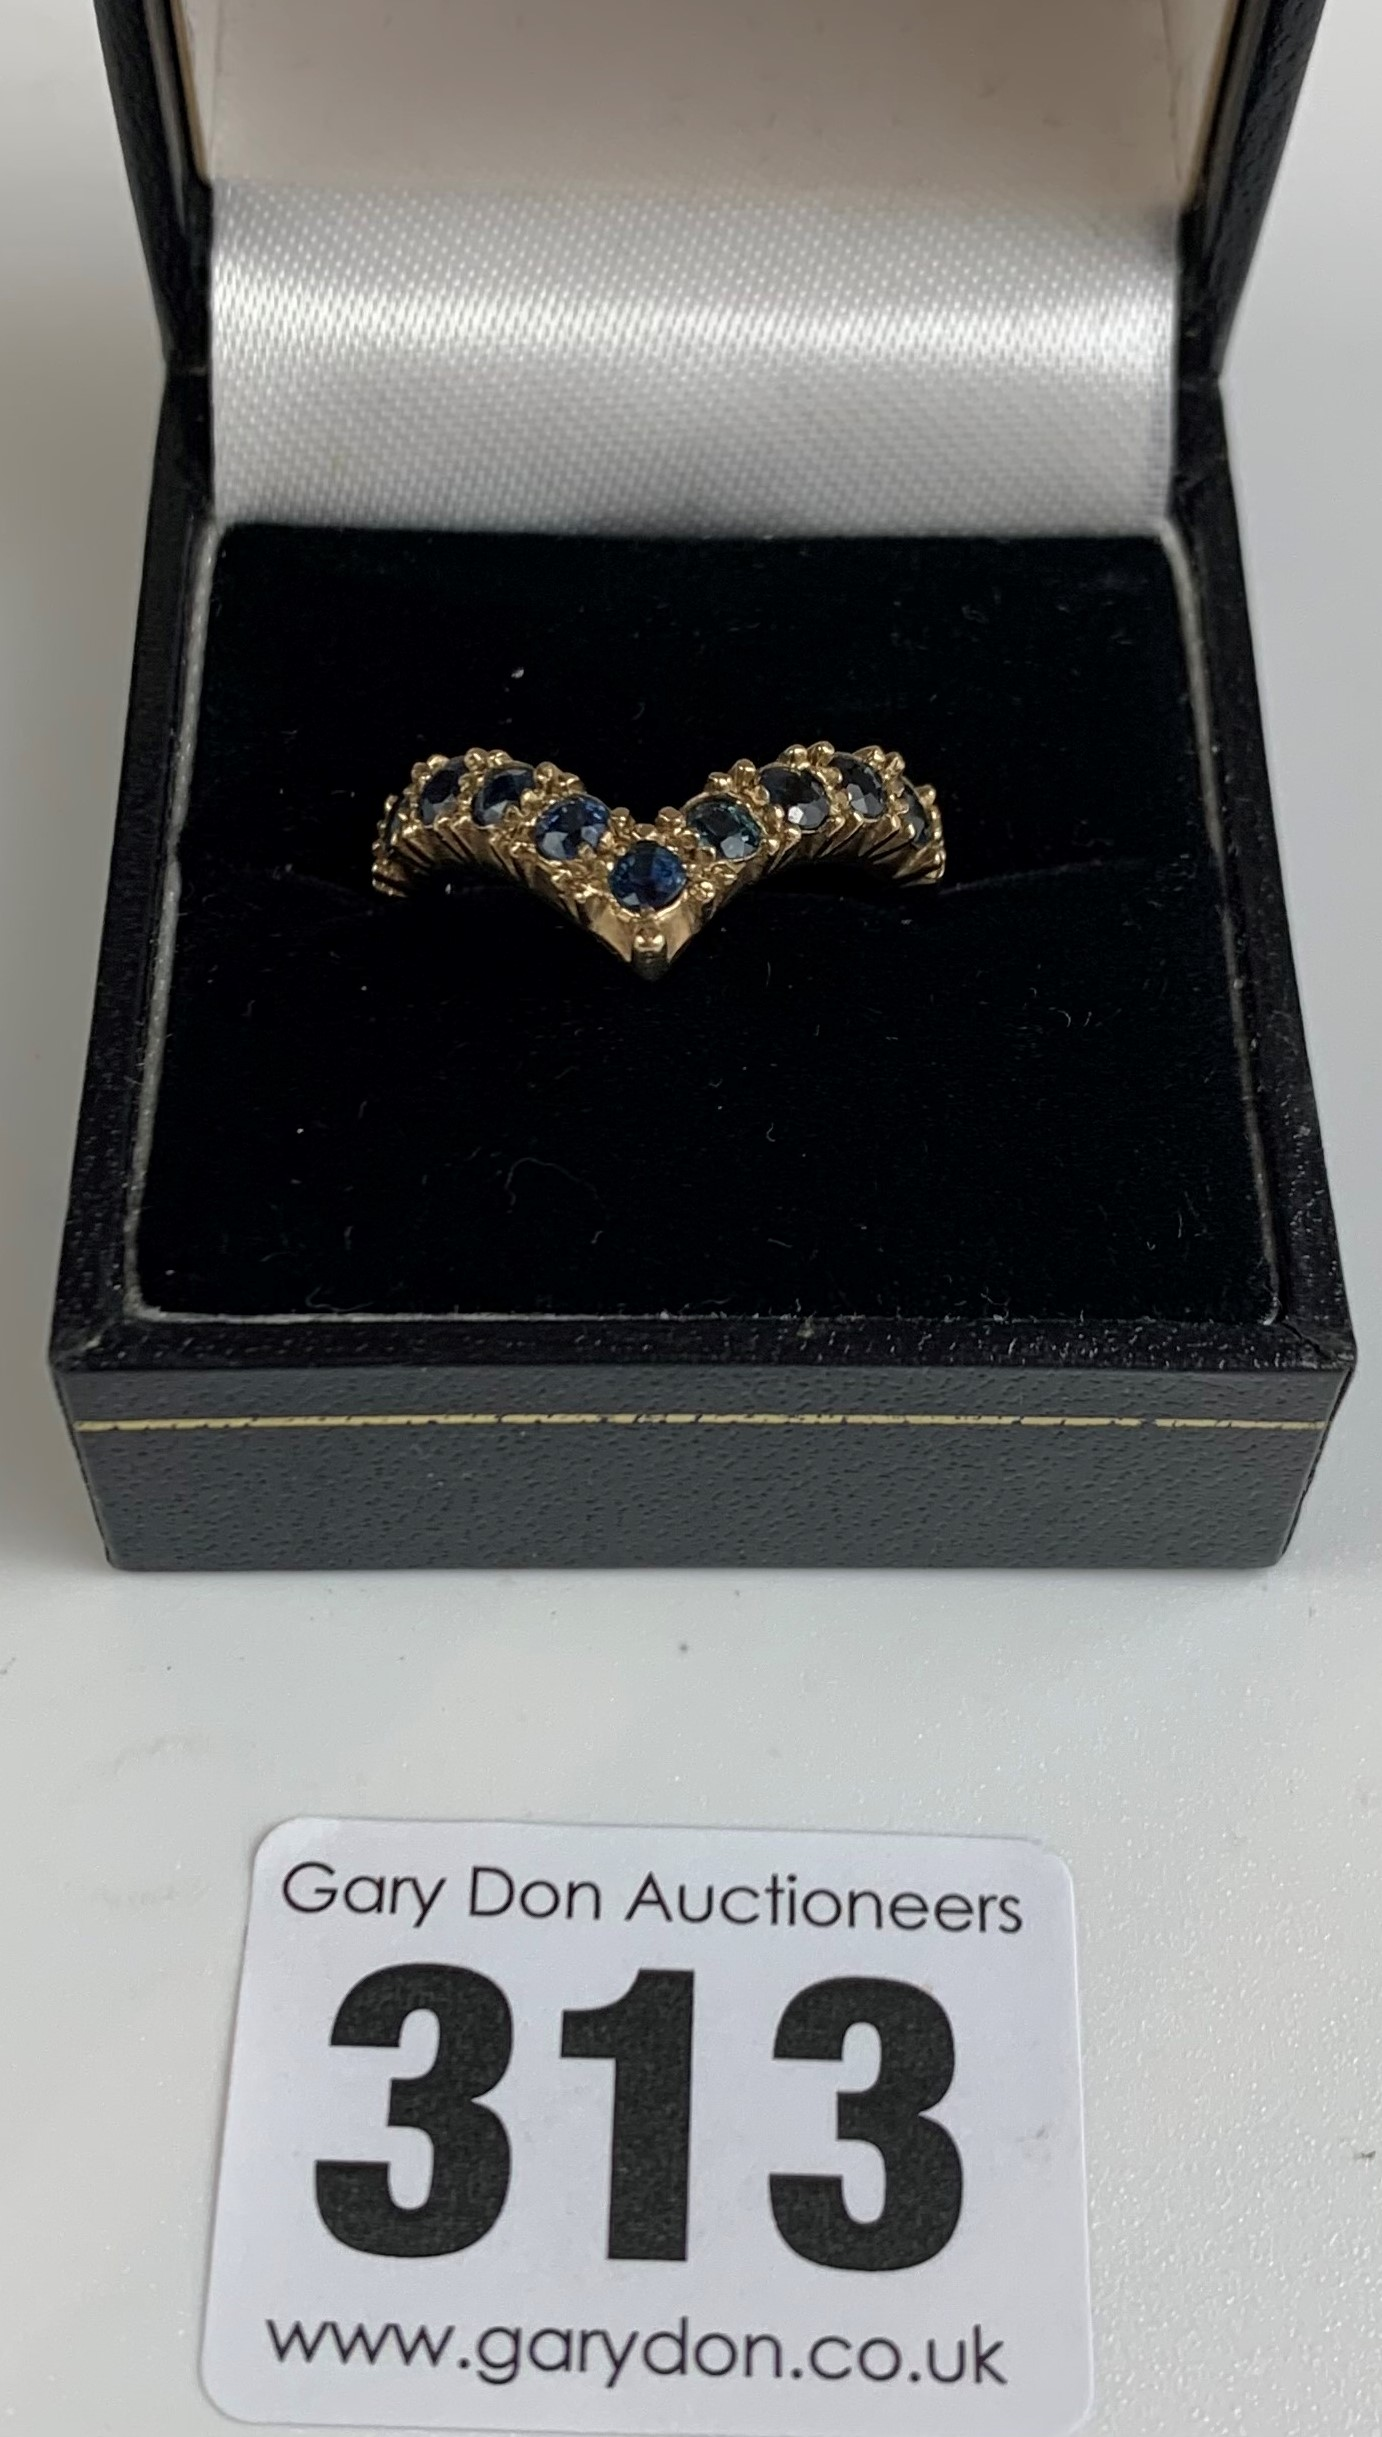 9k gold and blue stone wishbone ring, size N/O, w: 3.5 gms - Image 2 of 7